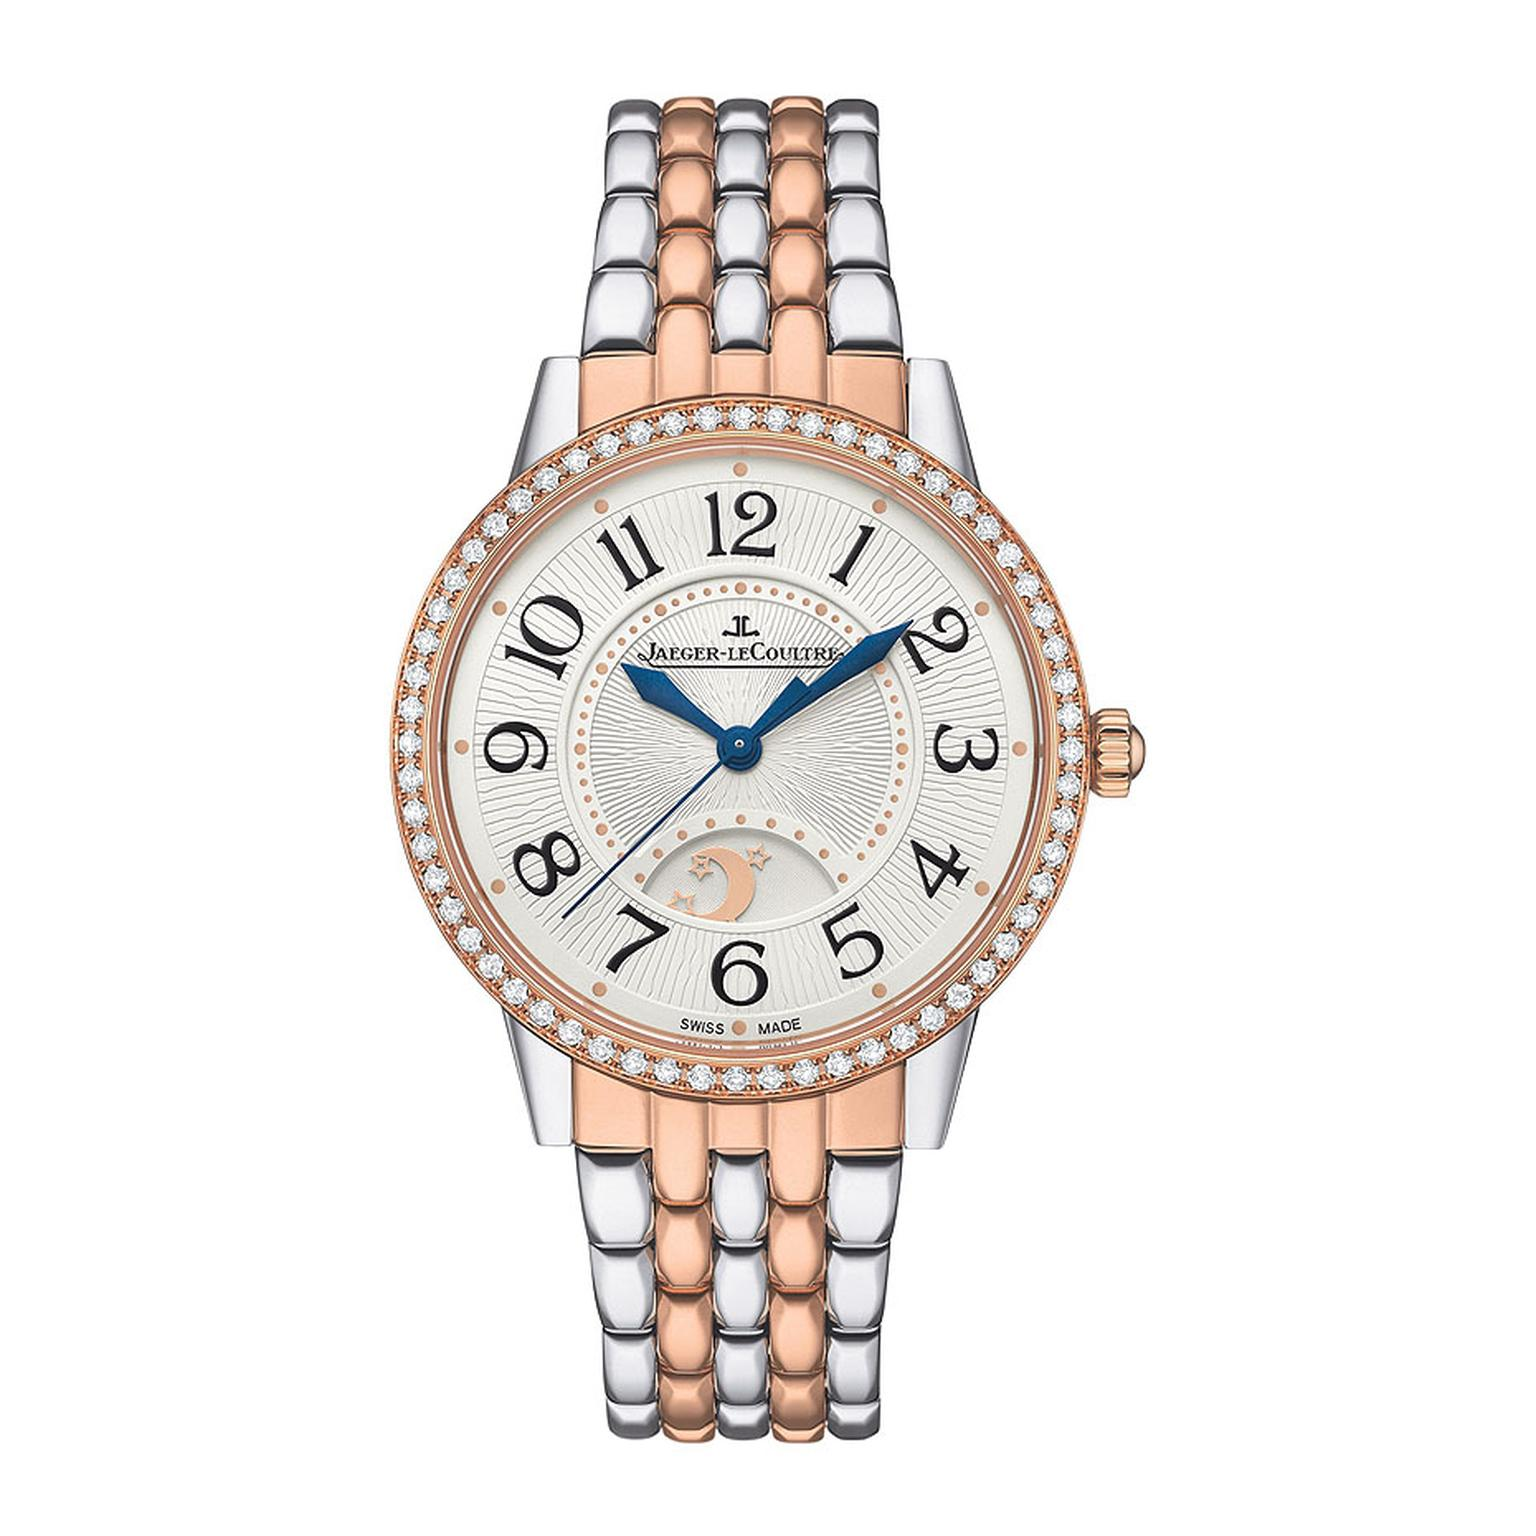 Jaeger Le-Coultre's new Rendez-Vous Night & Day ladies' watch is presented in a two-tone rose gold and stainless 34mm case and bracelet, with a silvered guilloché dial that features large 1930s-inspired numerals lit up by the diamond set bezel. It is fitt